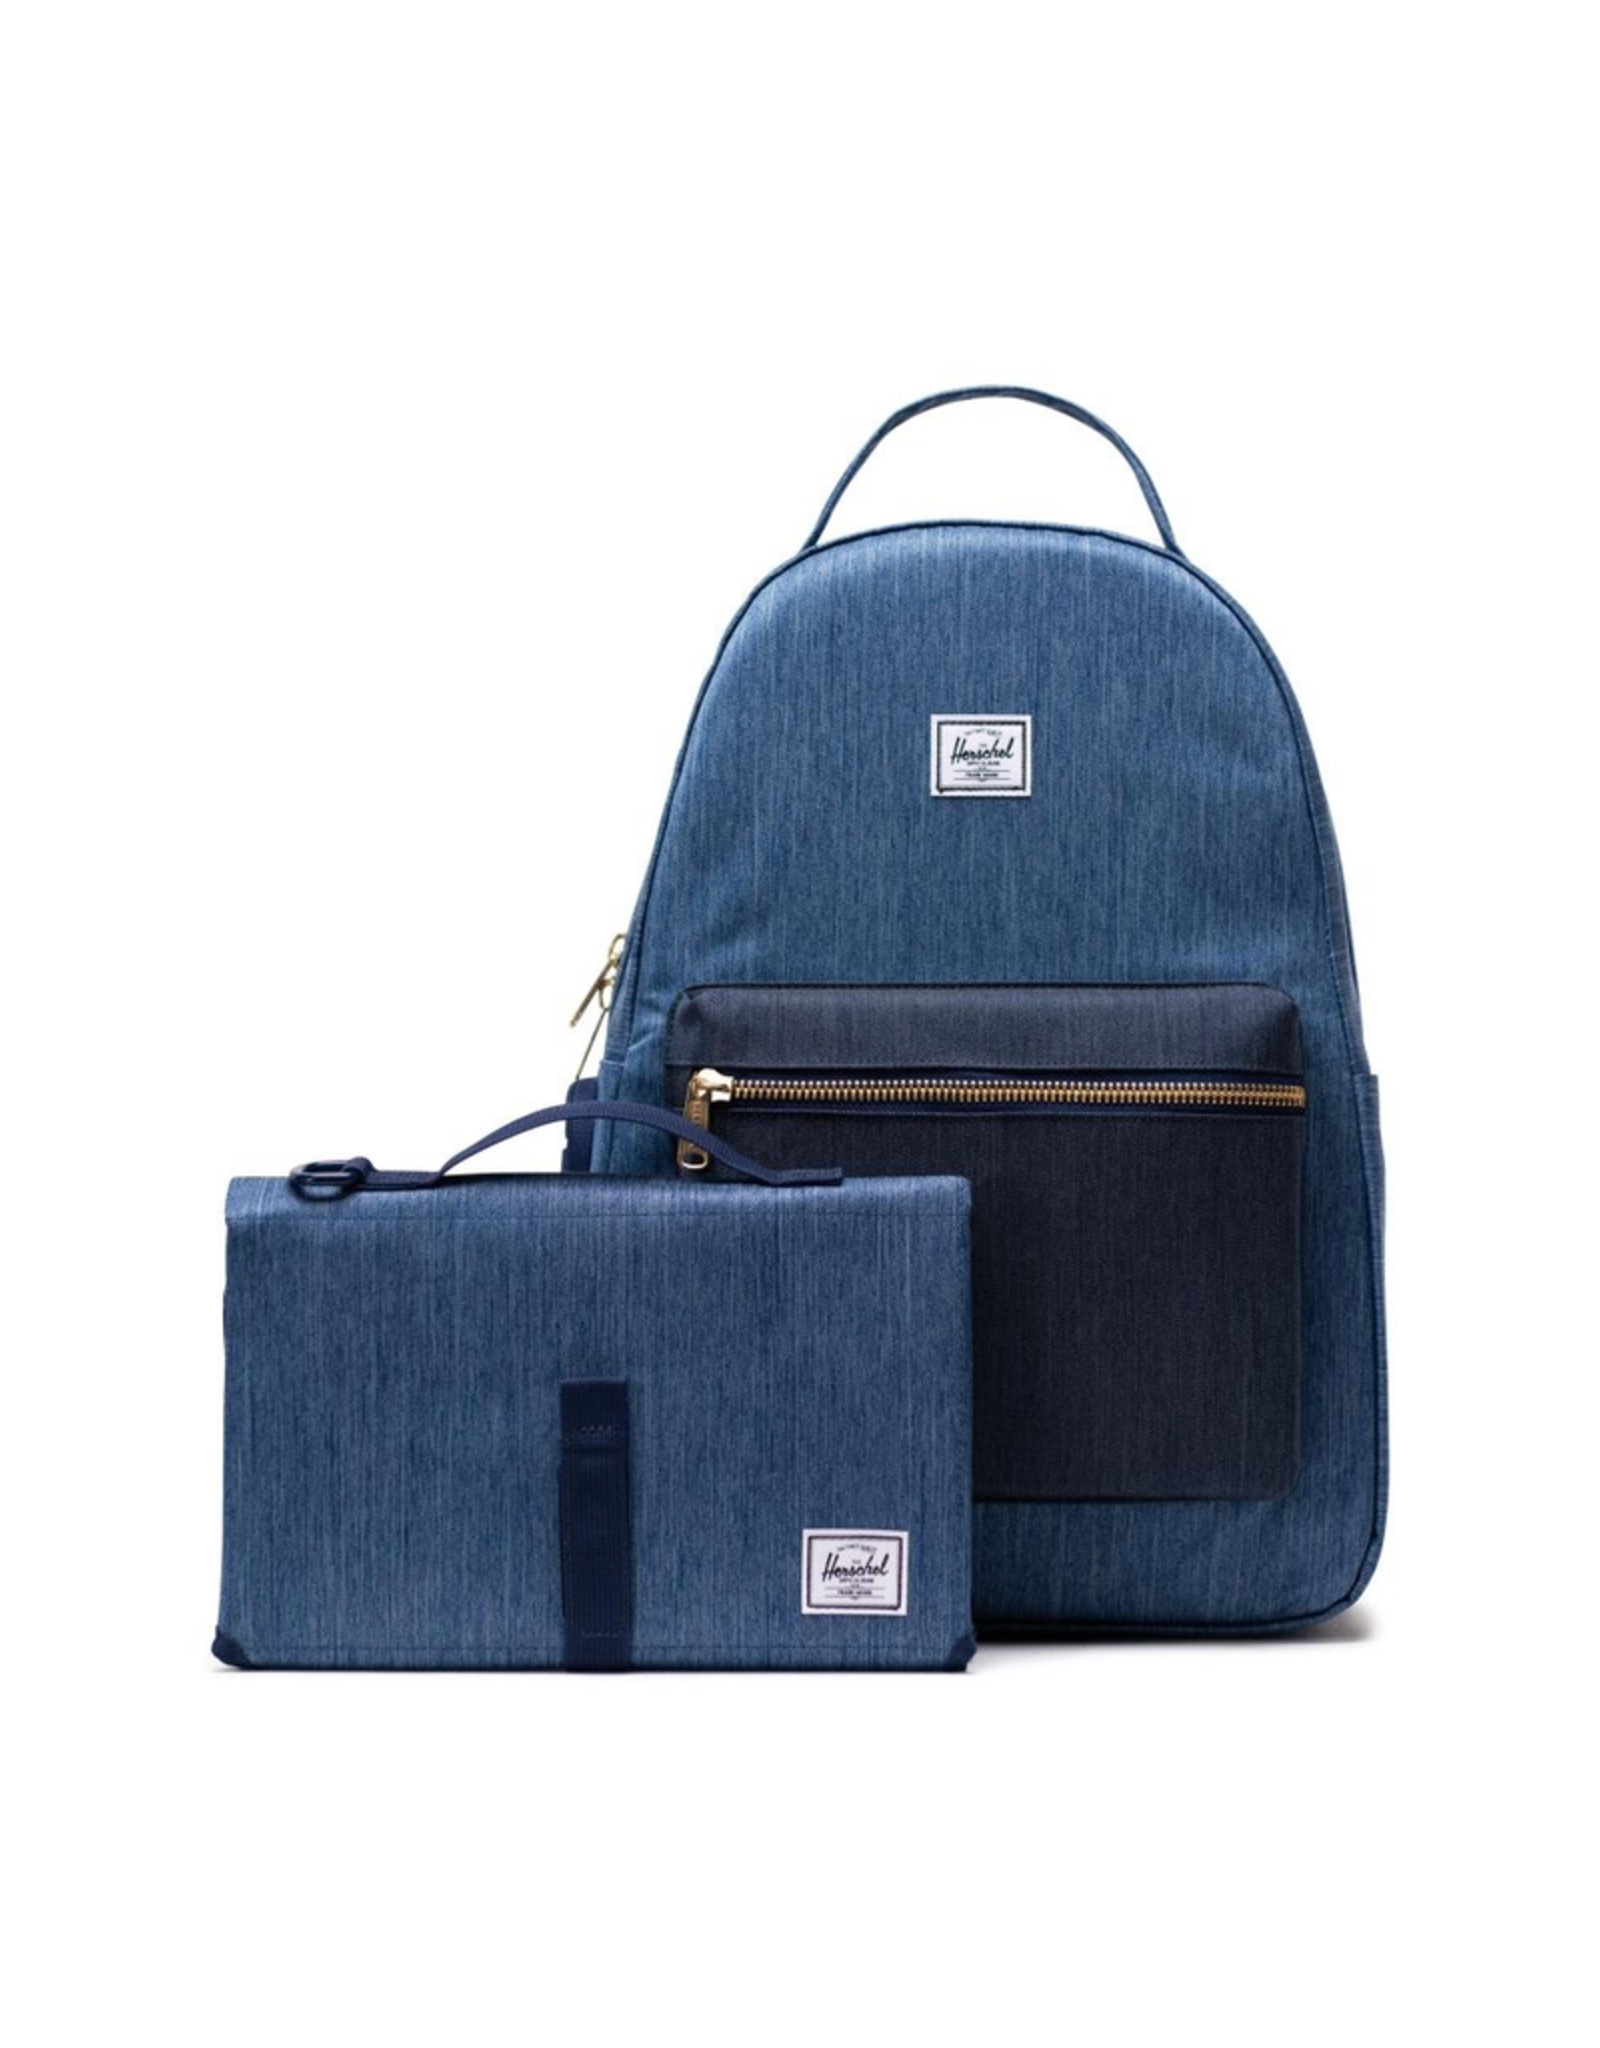 Herschel Supply Co. Nova Backpack | Sprout